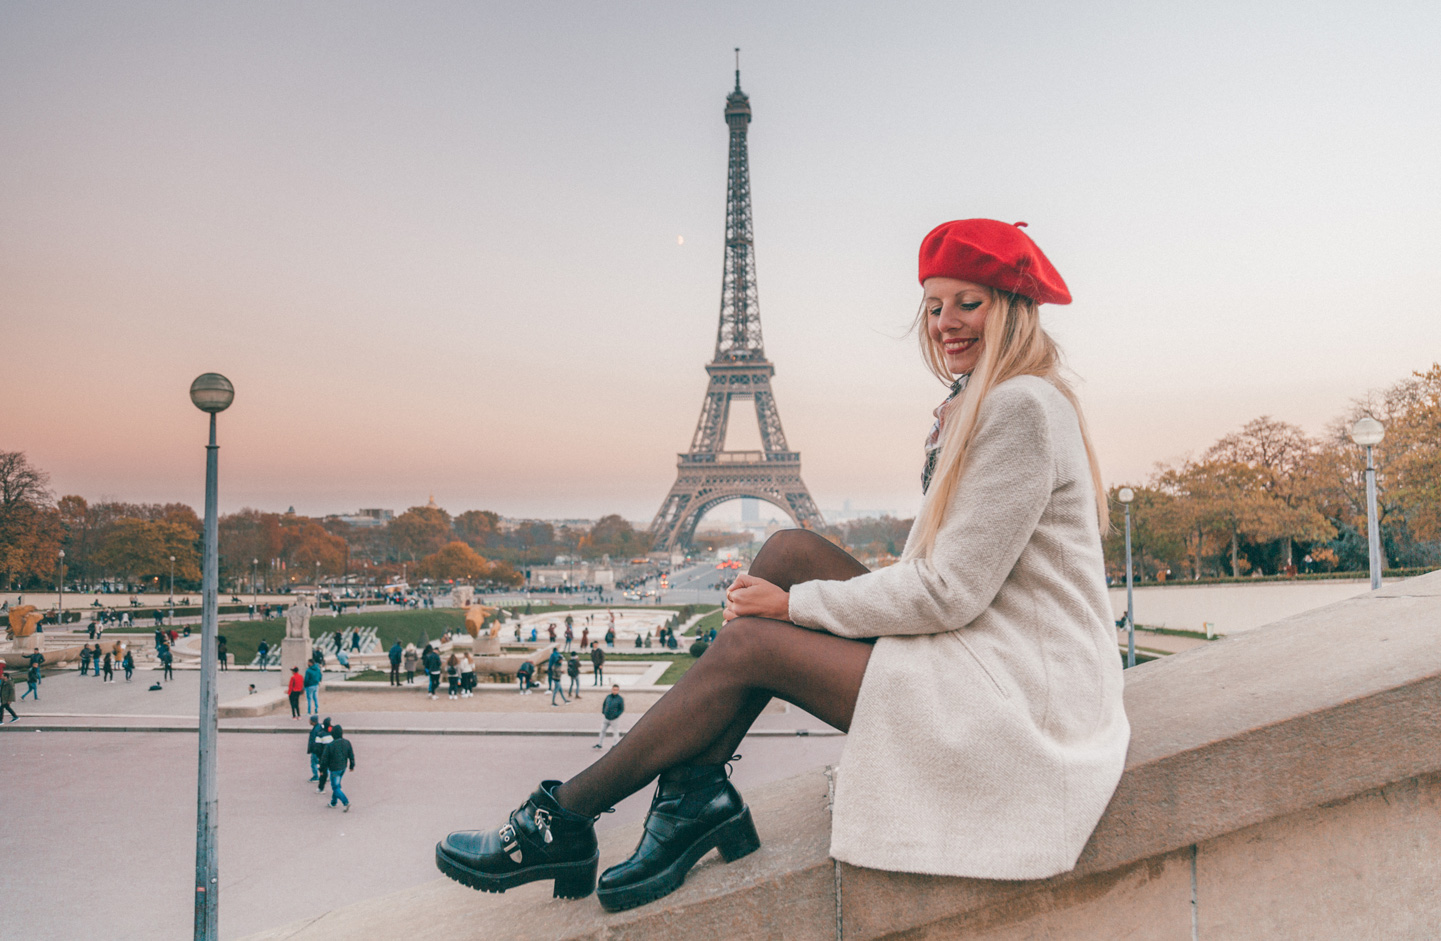 The Best Paris Instagram Spots You Can't Miss